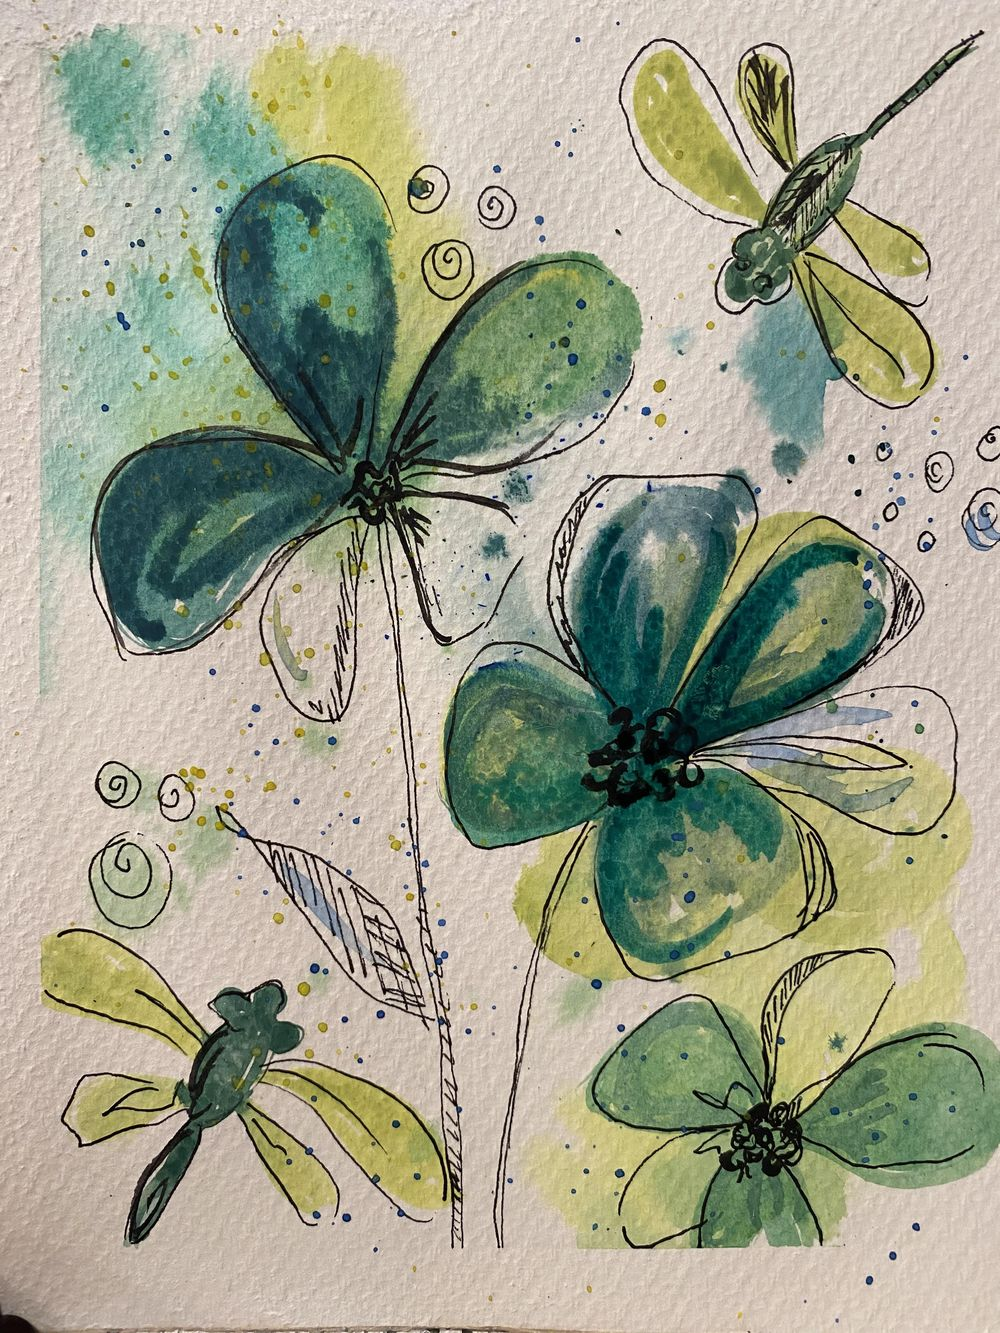 Water Color Leaves - image 1 - student project